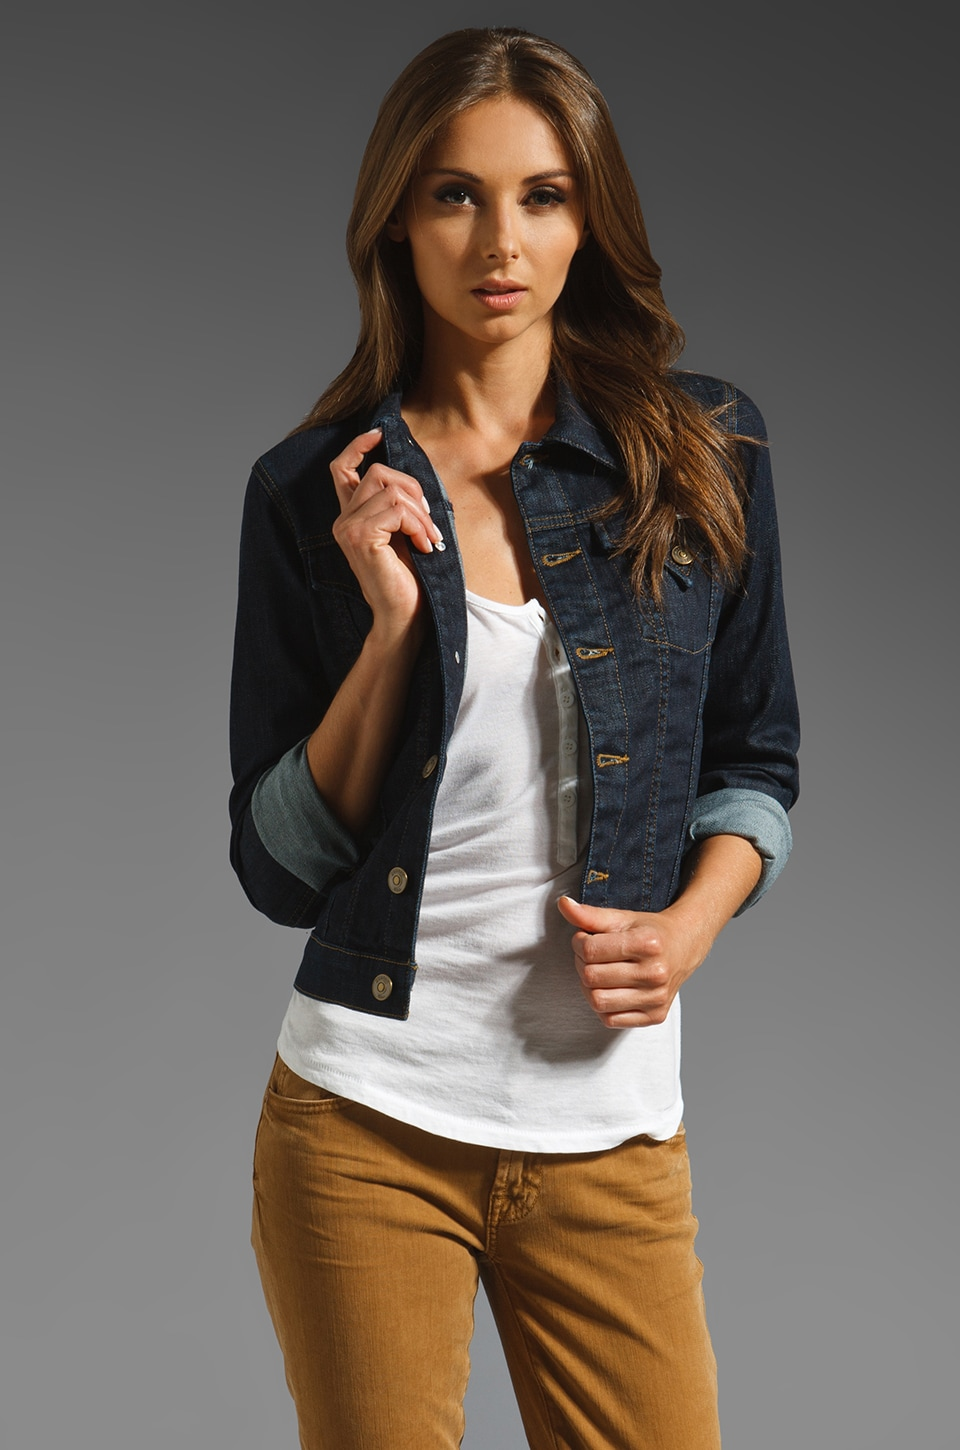 Hudson Jeans The Signature Jean Jacket in Rinse